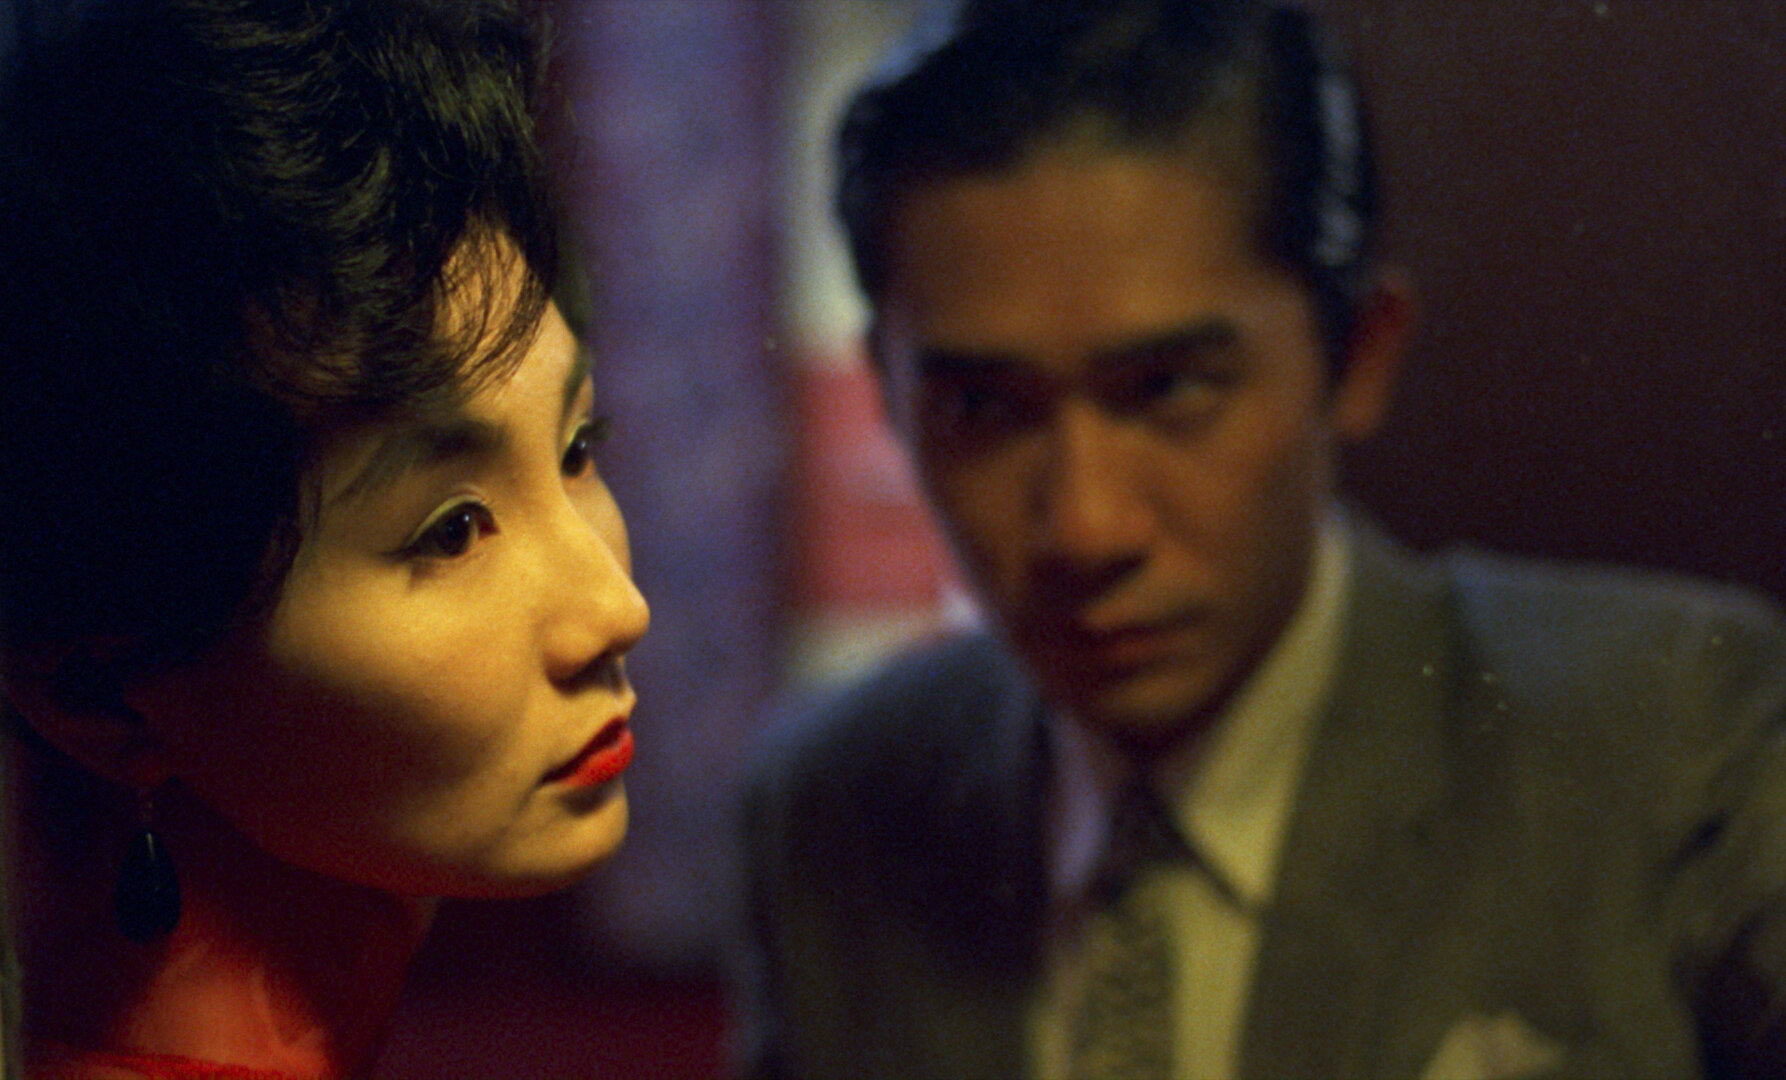 Su (Maggie Cheung) is pictured in the foreground, close, looking forlornly off camera. Chow (Tony Leung Chiu-wai) looks at her but she doesn't notice.